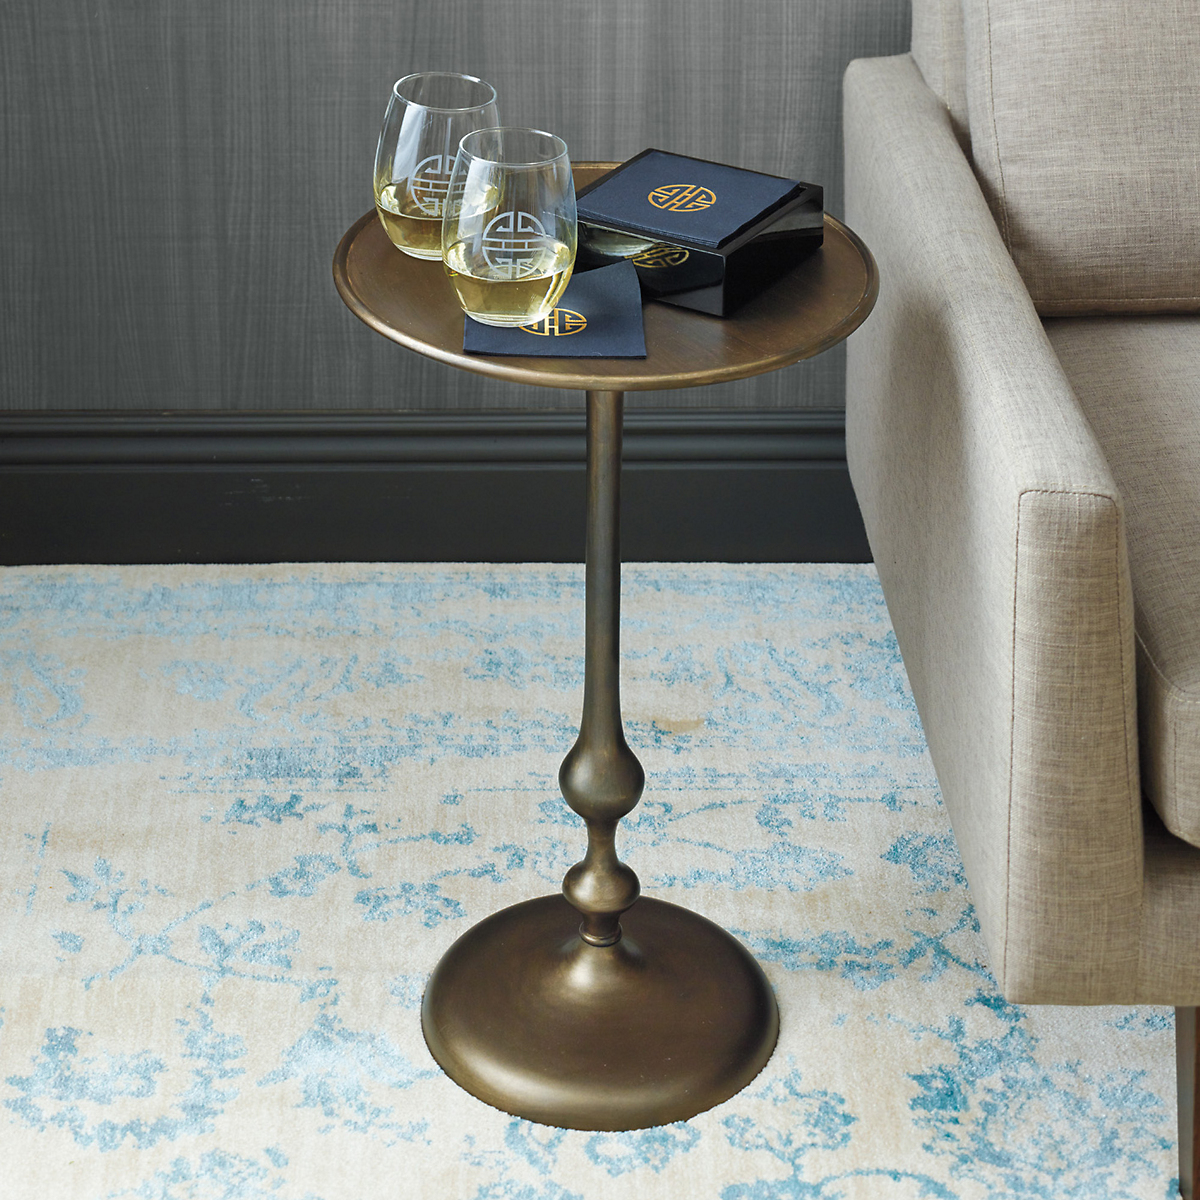 Bryson Pedestal Table